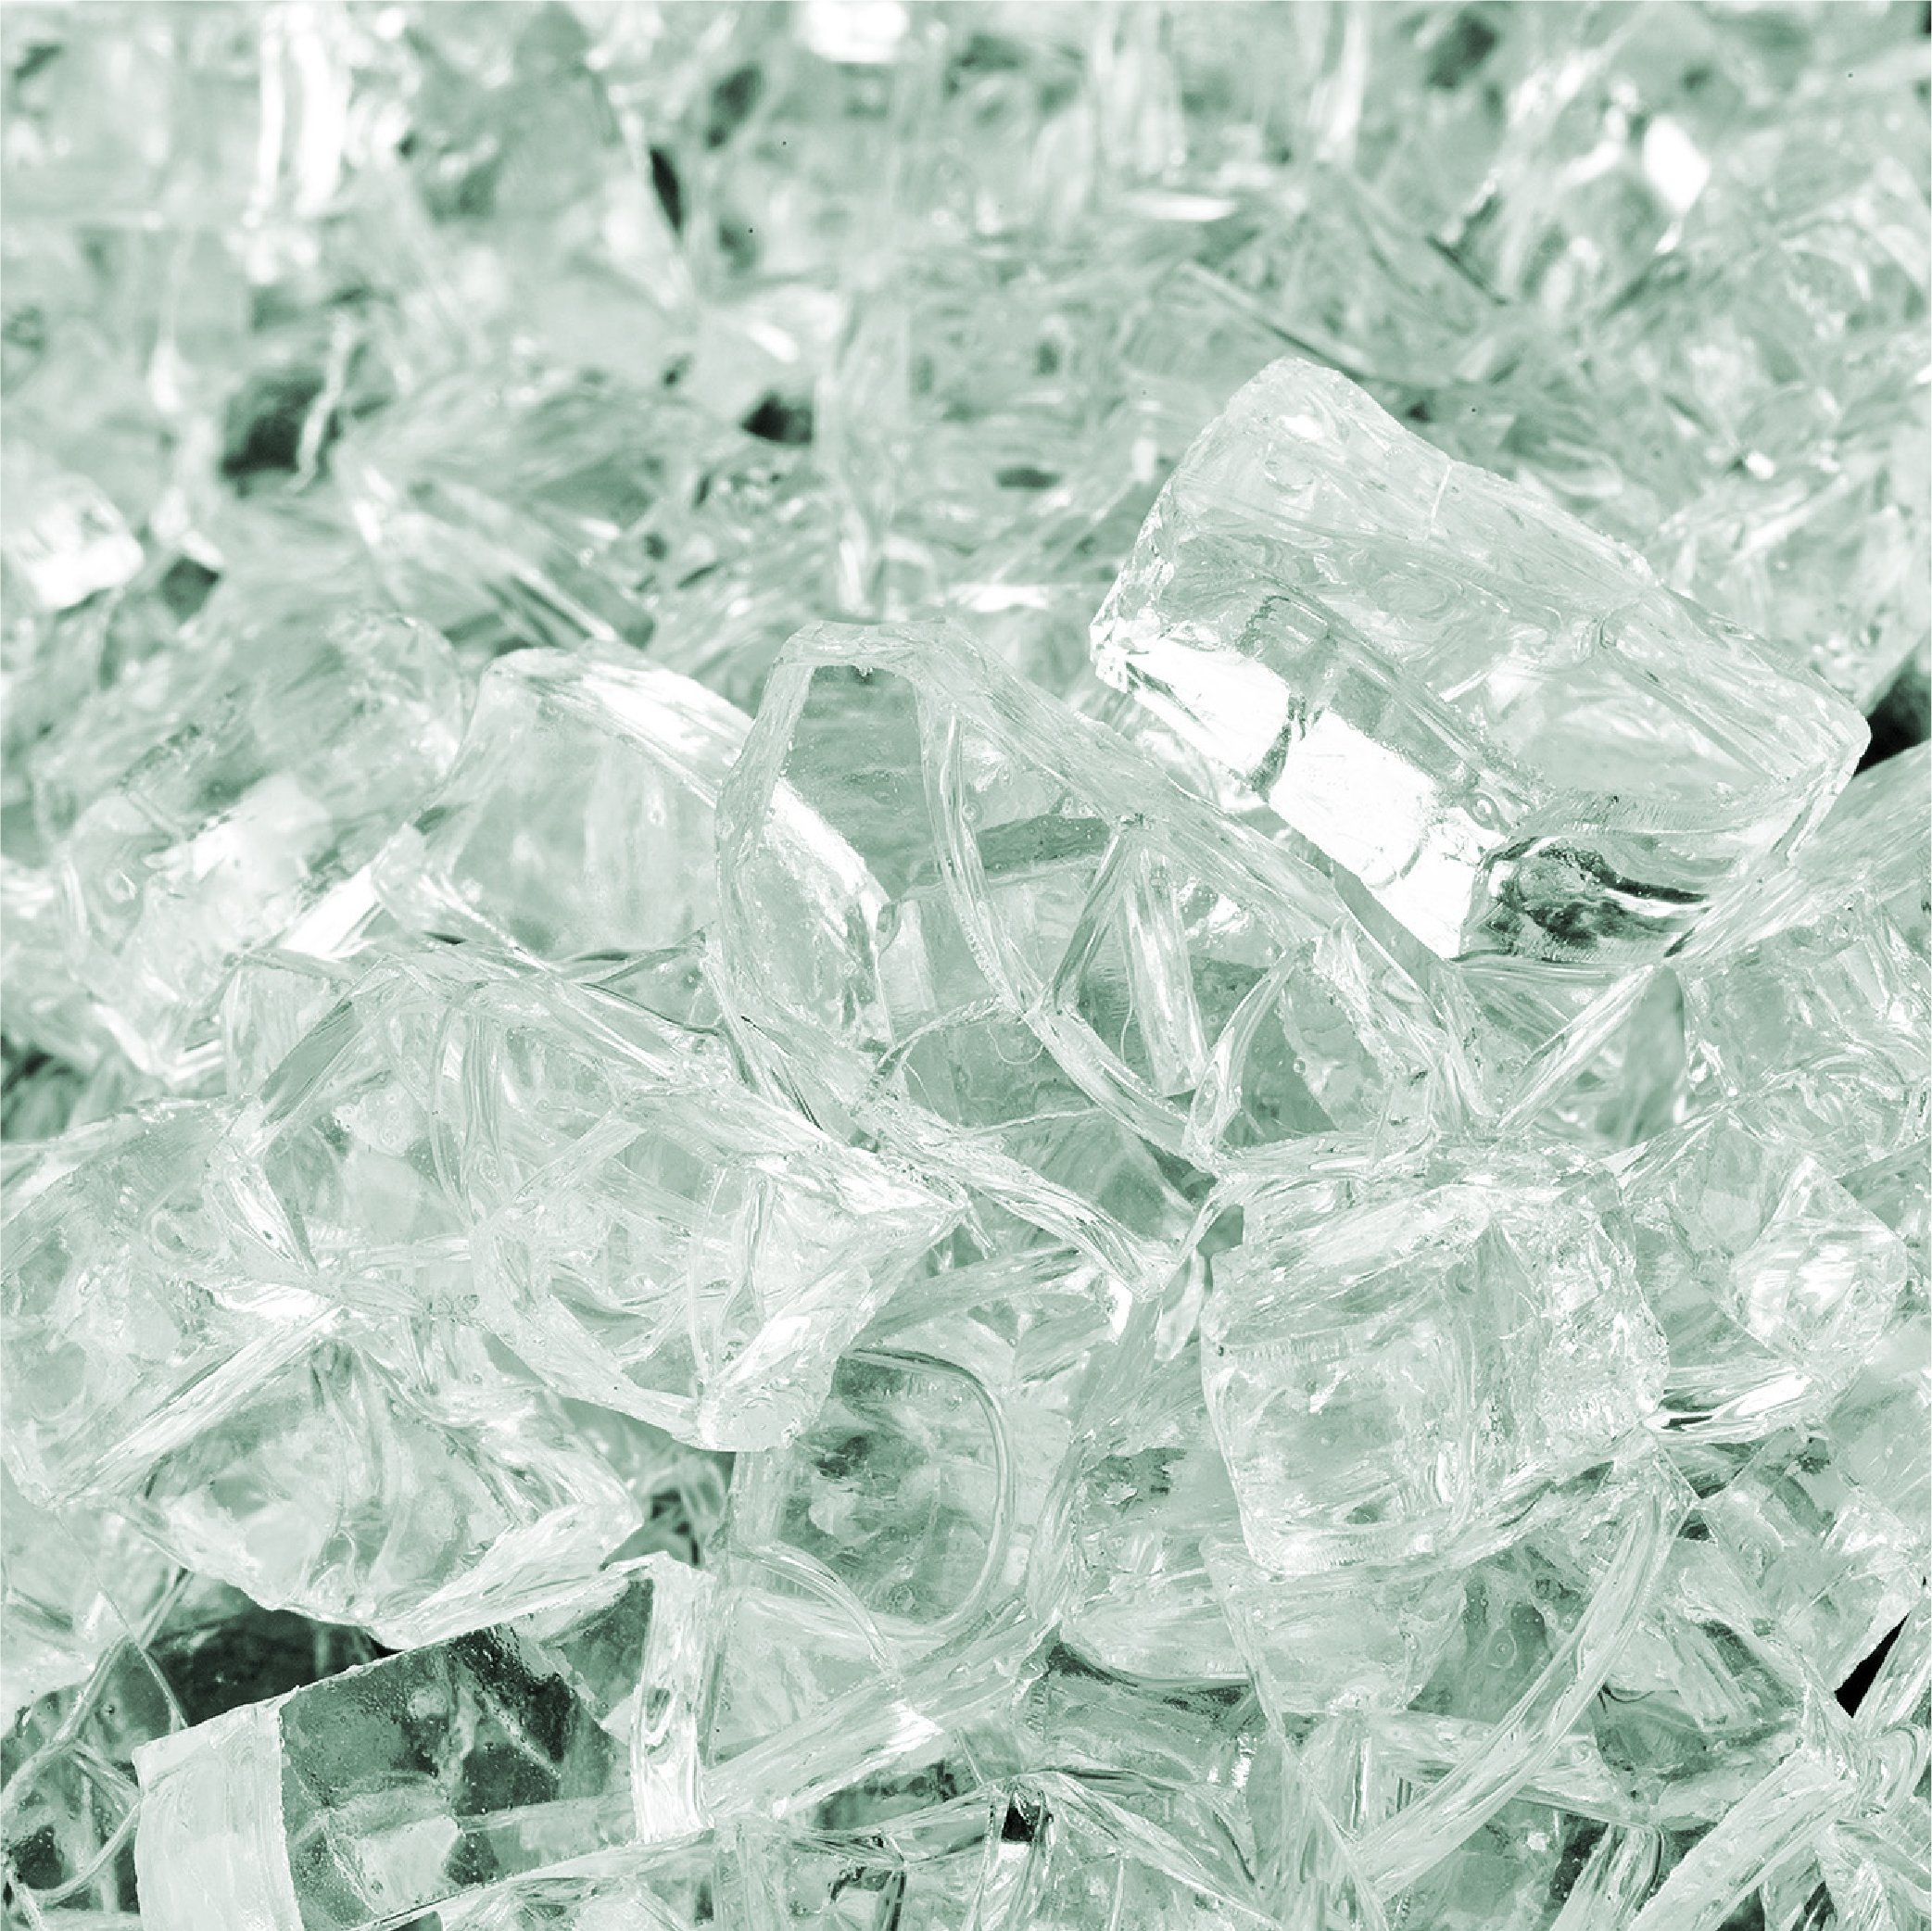 Arctic Ice - Fire Glass for Indoor and Outdoor Fire Pits or Fireplaces | 10 Pounds | 1/4 Inch